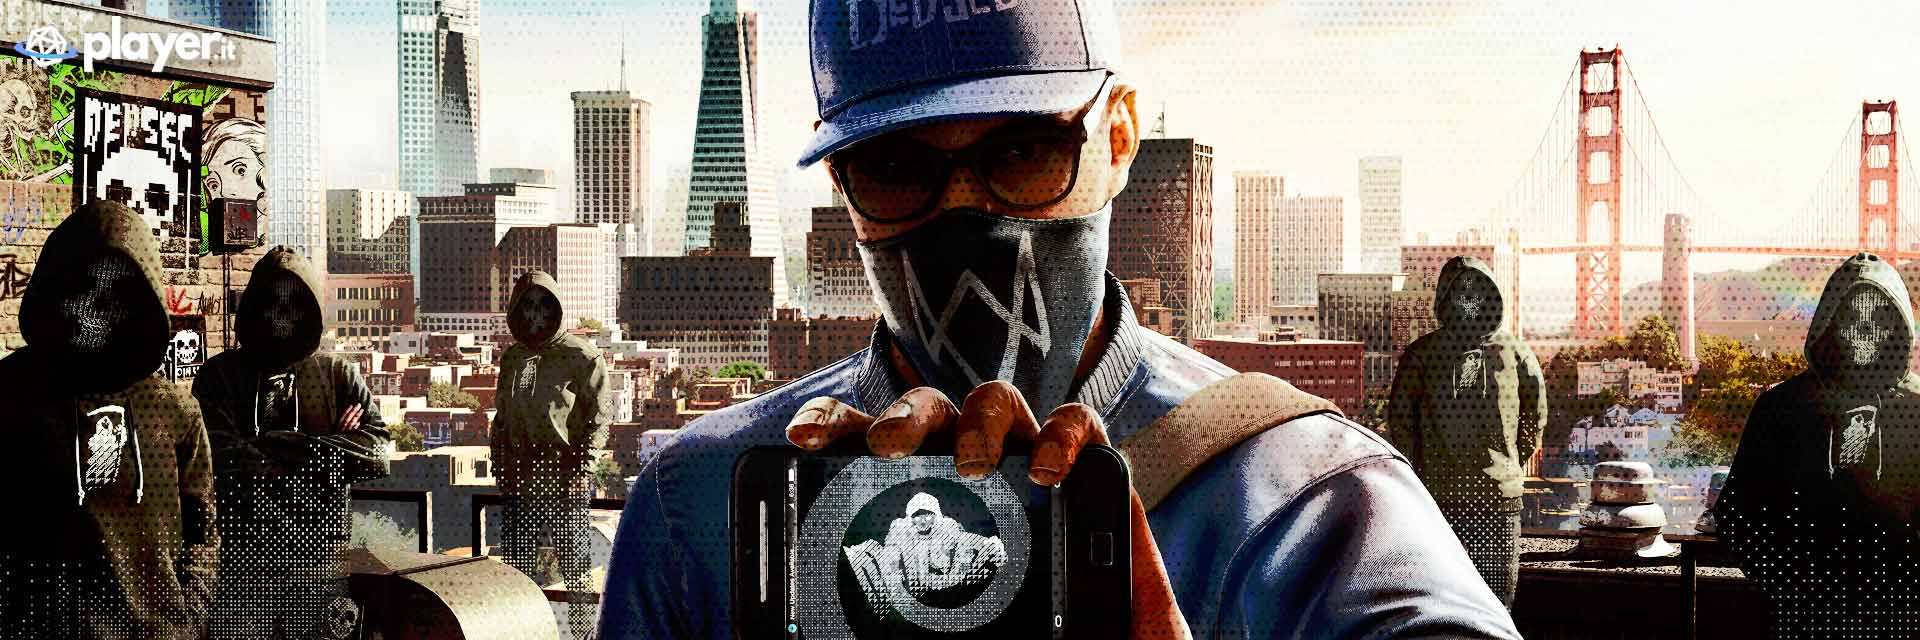 watch dogs 2 wallpaper in hd